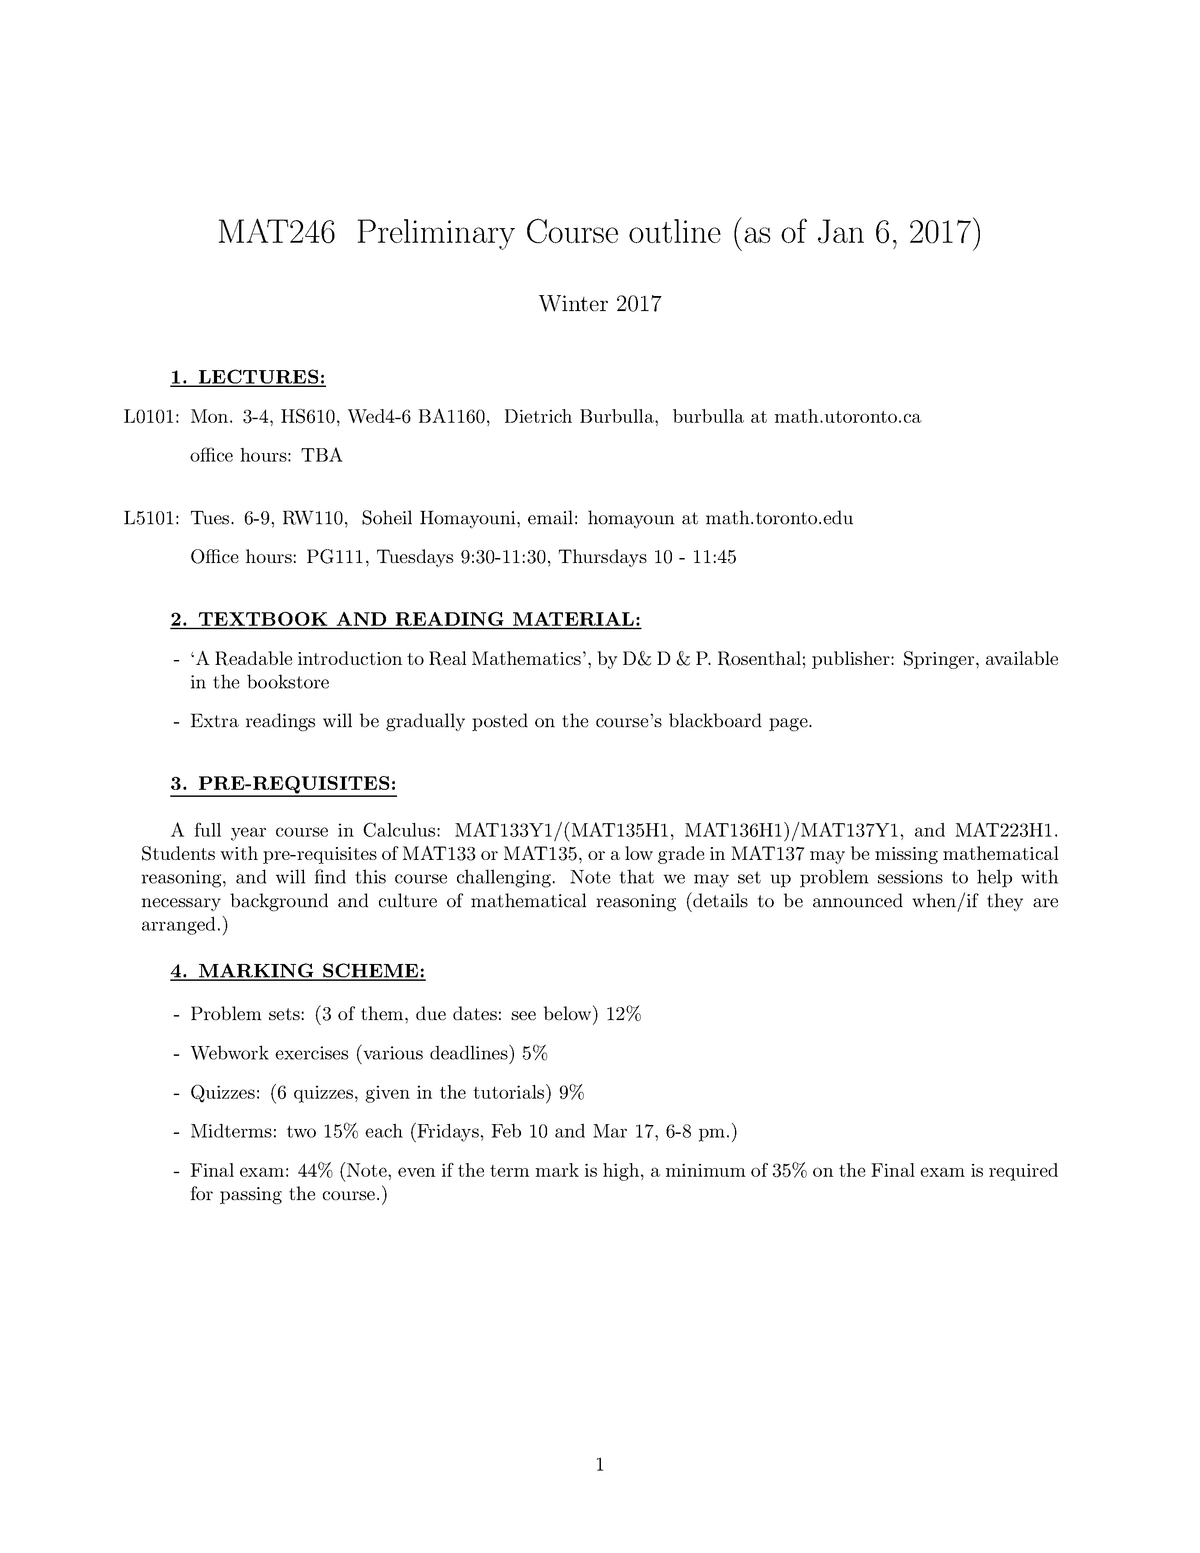 Mat246 syllabus - Mat246H1: Concepts in Abstract Mathematics